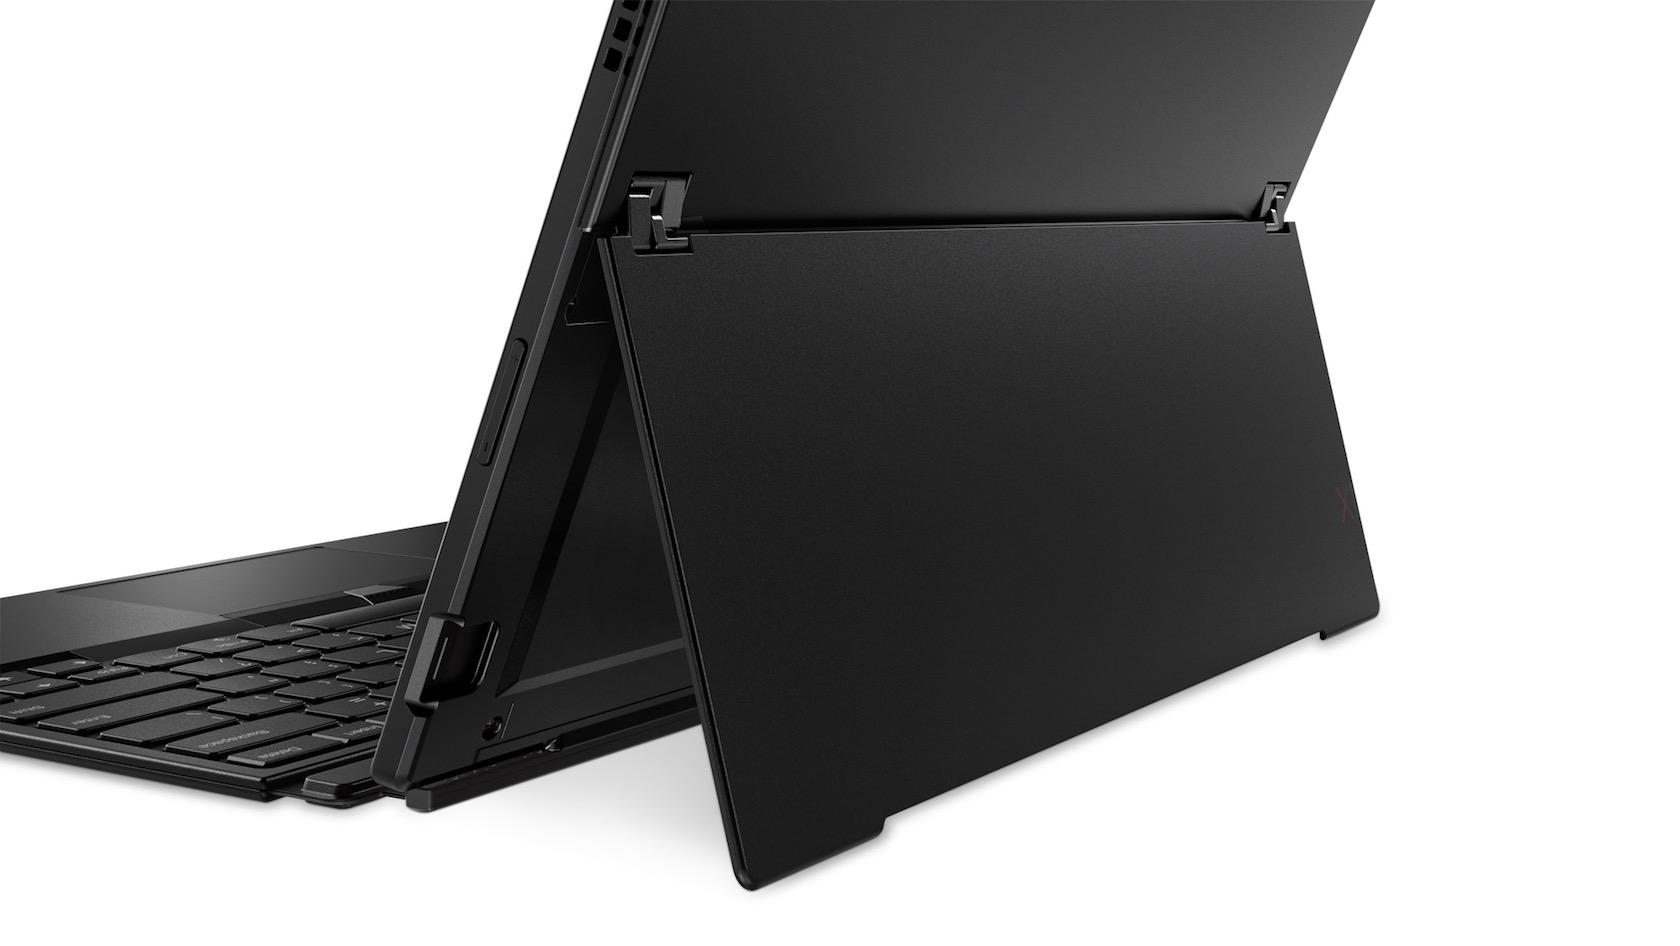 Thinkpad X1 Carbon 3rd Generation Screen